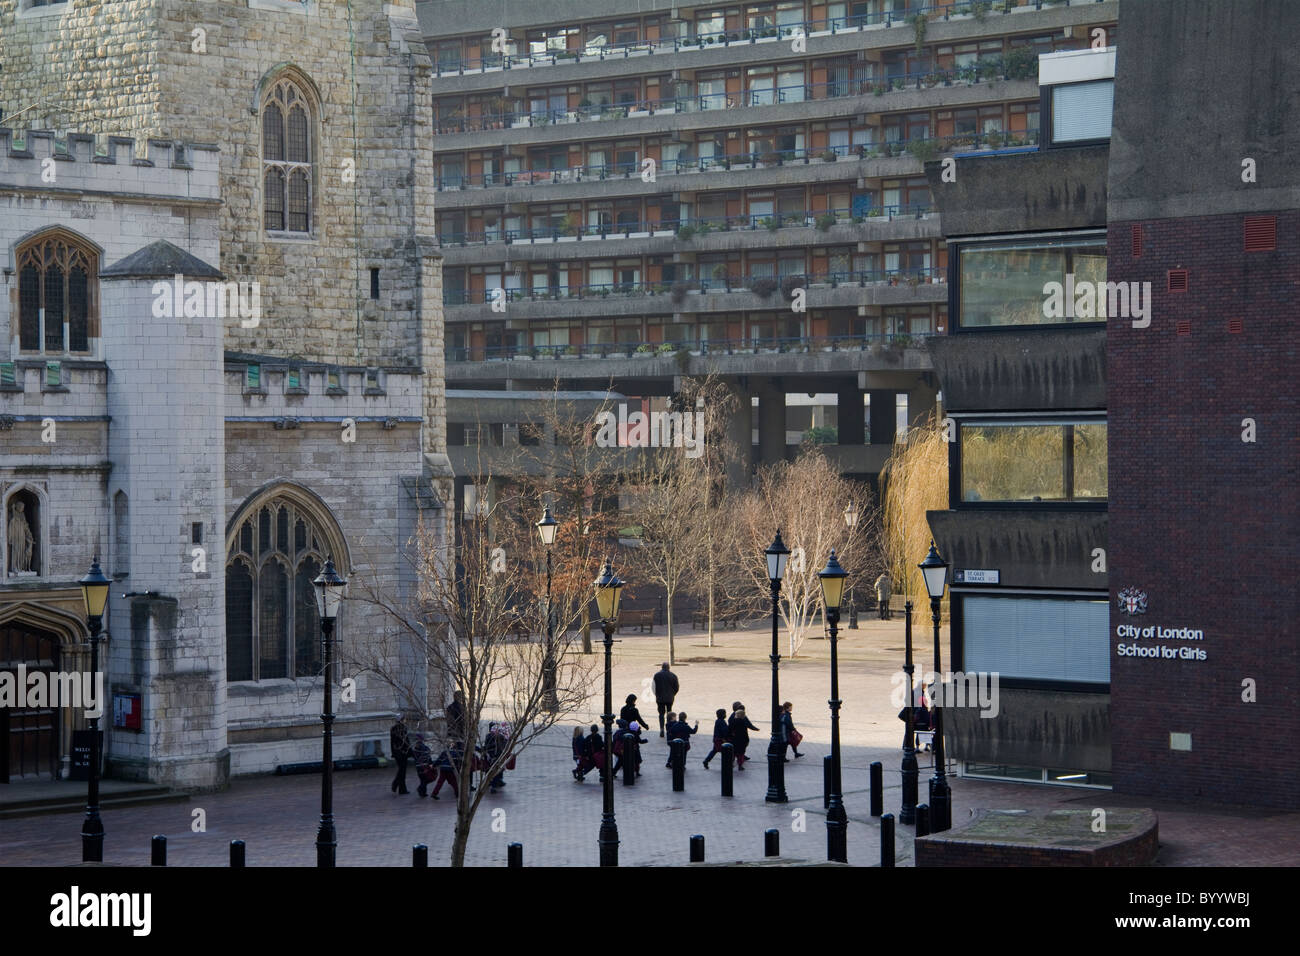 City Of London School For Girls And St Giles Church From The Stock Photo Alamy